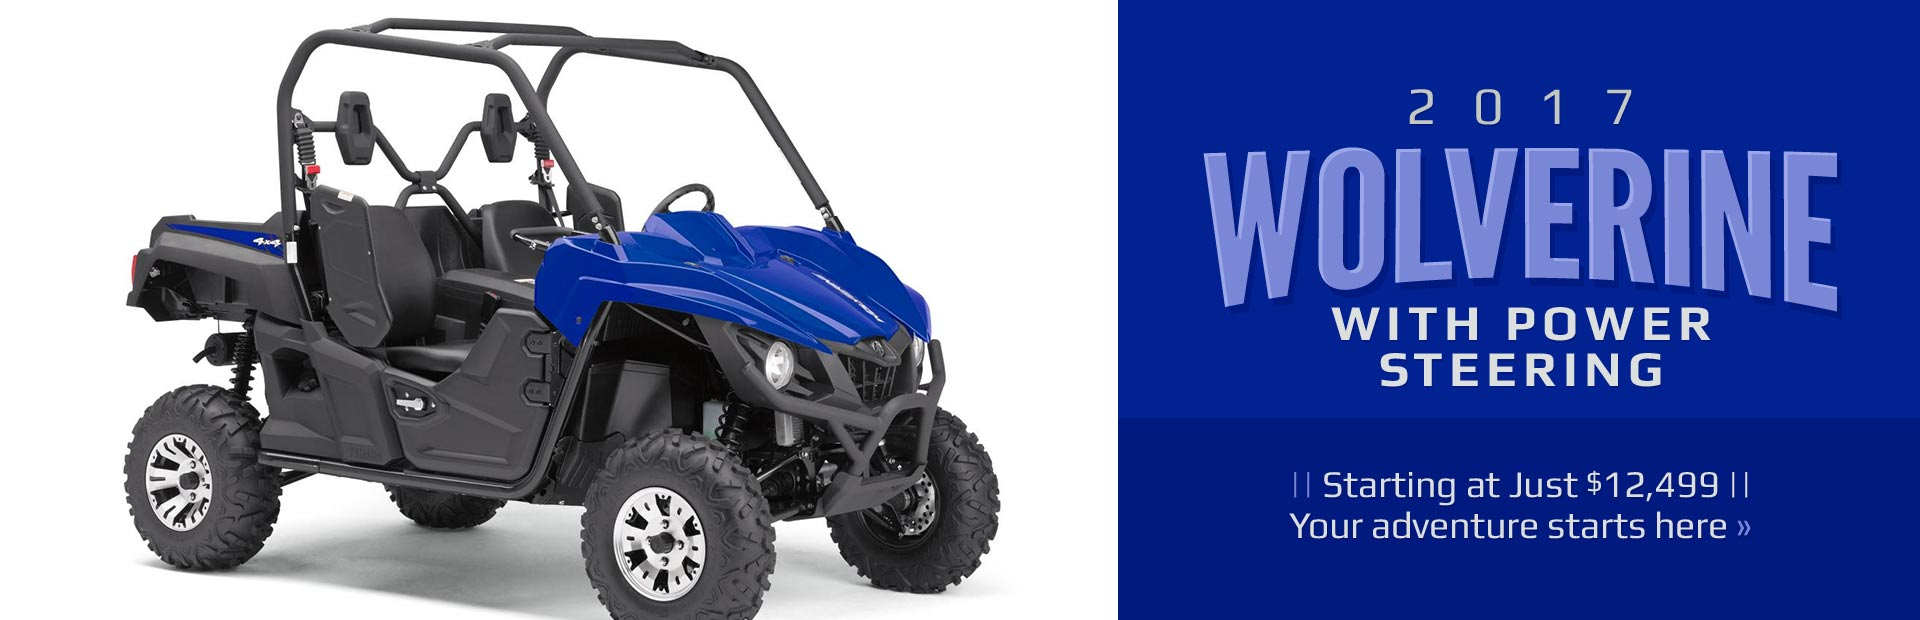 2017 Yamaha Wolverine with Power Steering Starting at Just $12,499: Click here for details.